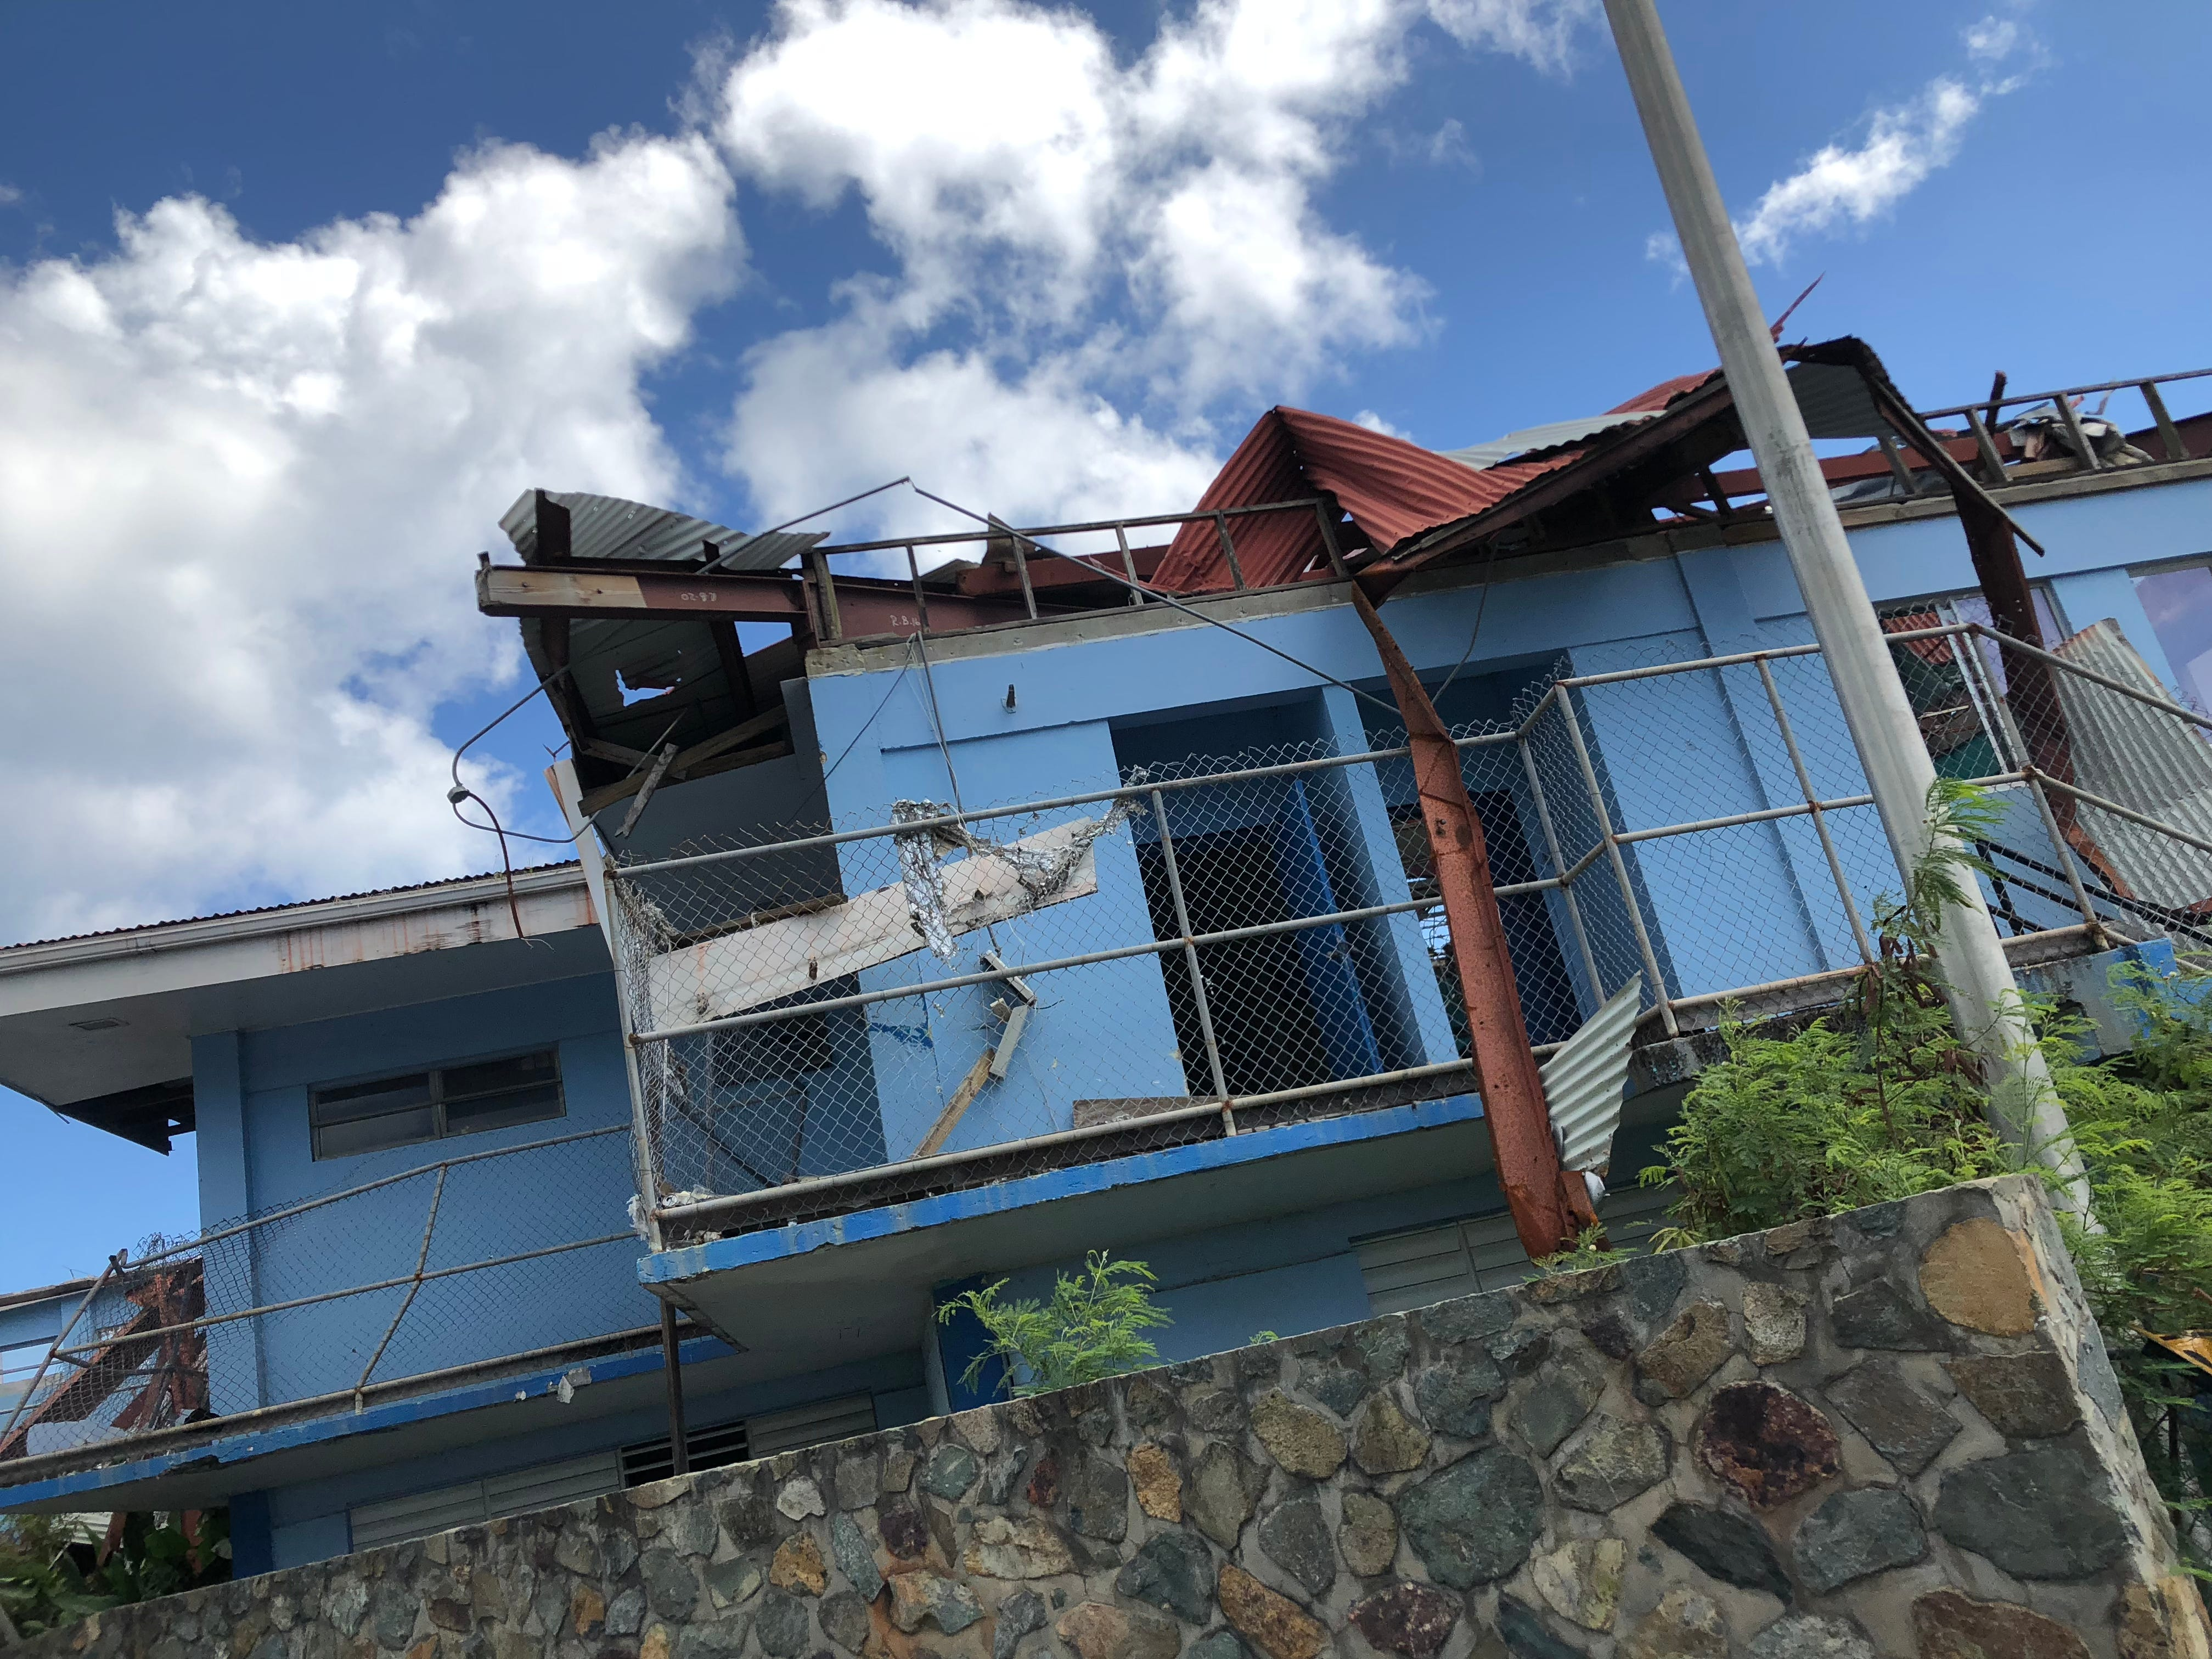 Hurricanes Irma and Maria damaged or destroyed 85% of the U.S. Virgin IslandsÕ 56,000 homes, including this one on St. John.